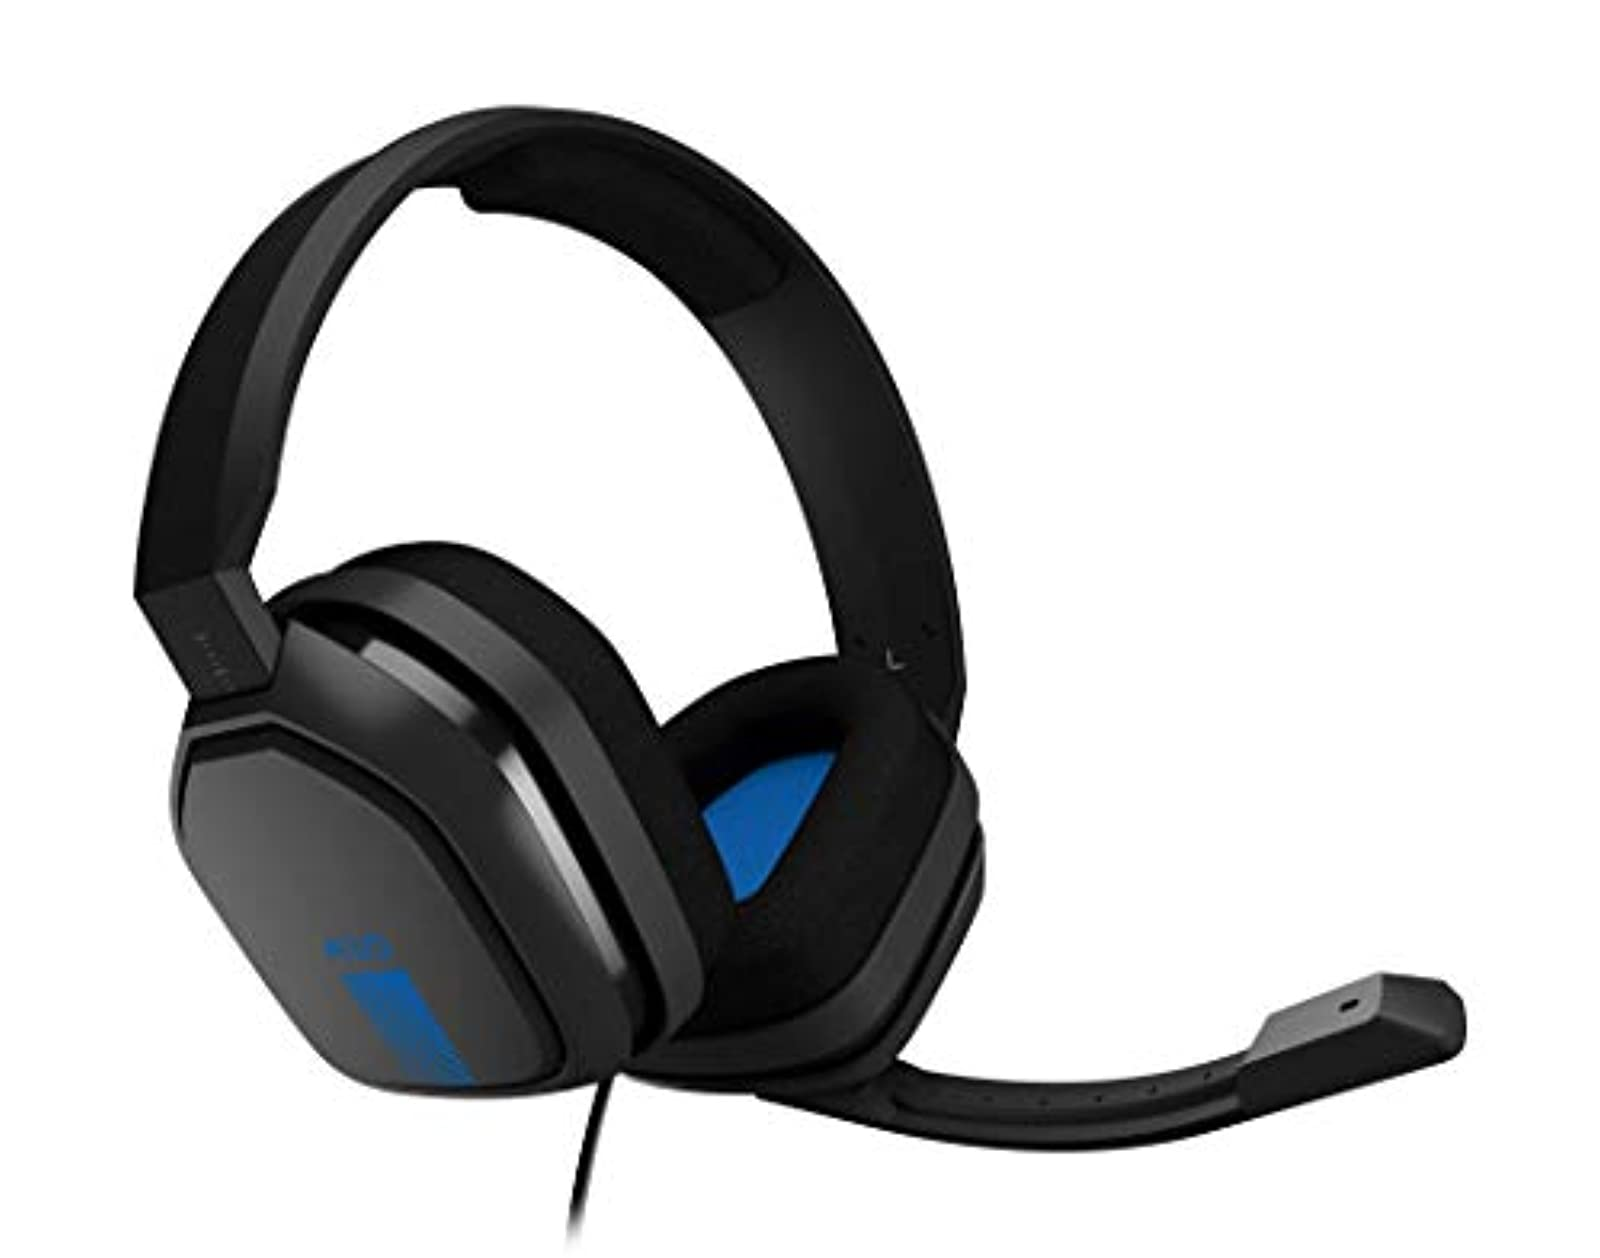 Astro Gaming A10 Gaming Headset Blue For PlayStation 4 PS4 Microphone Mic FMV590